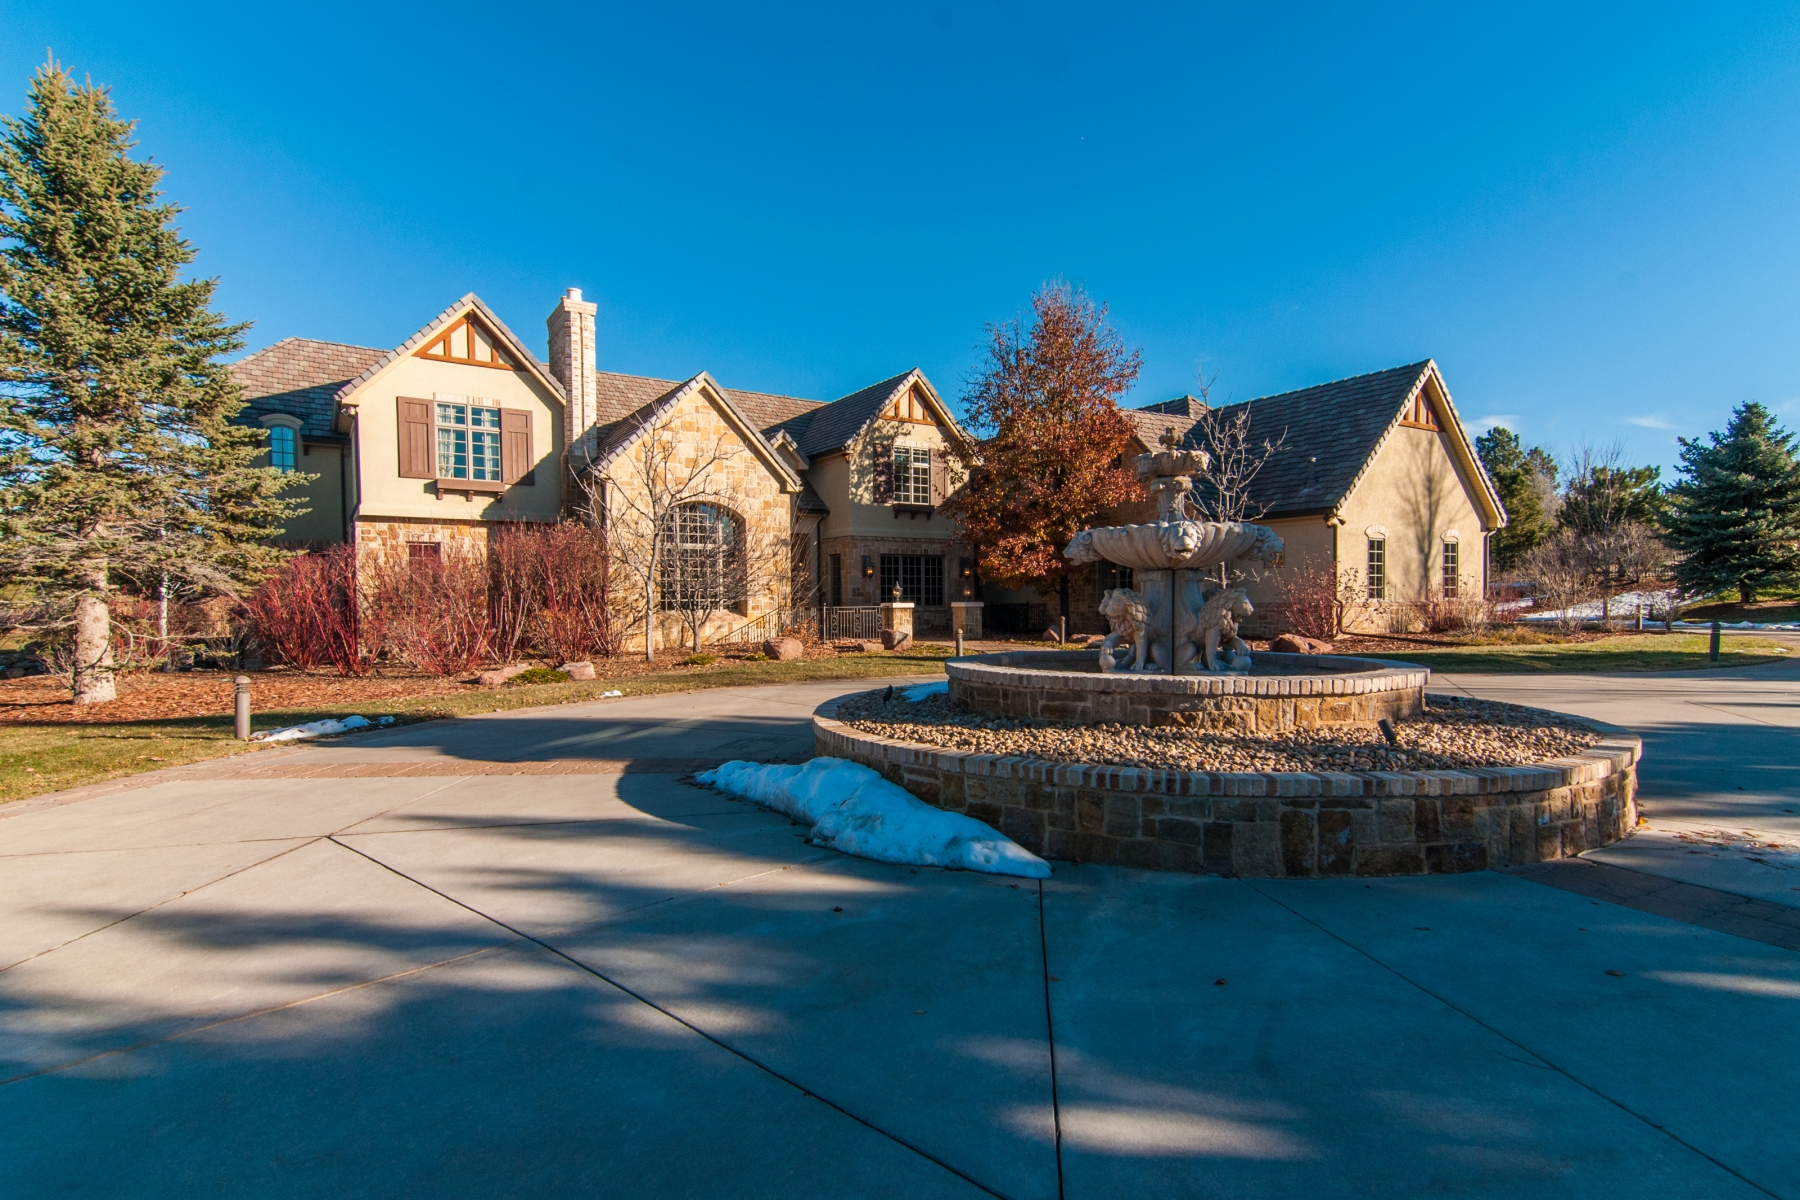 Single Family Home for Sale at Resort Living in Cherry Hills on 2.5 Acres 23 Carriage Lane Cherry Hills Village, Colorado, 80121 United States